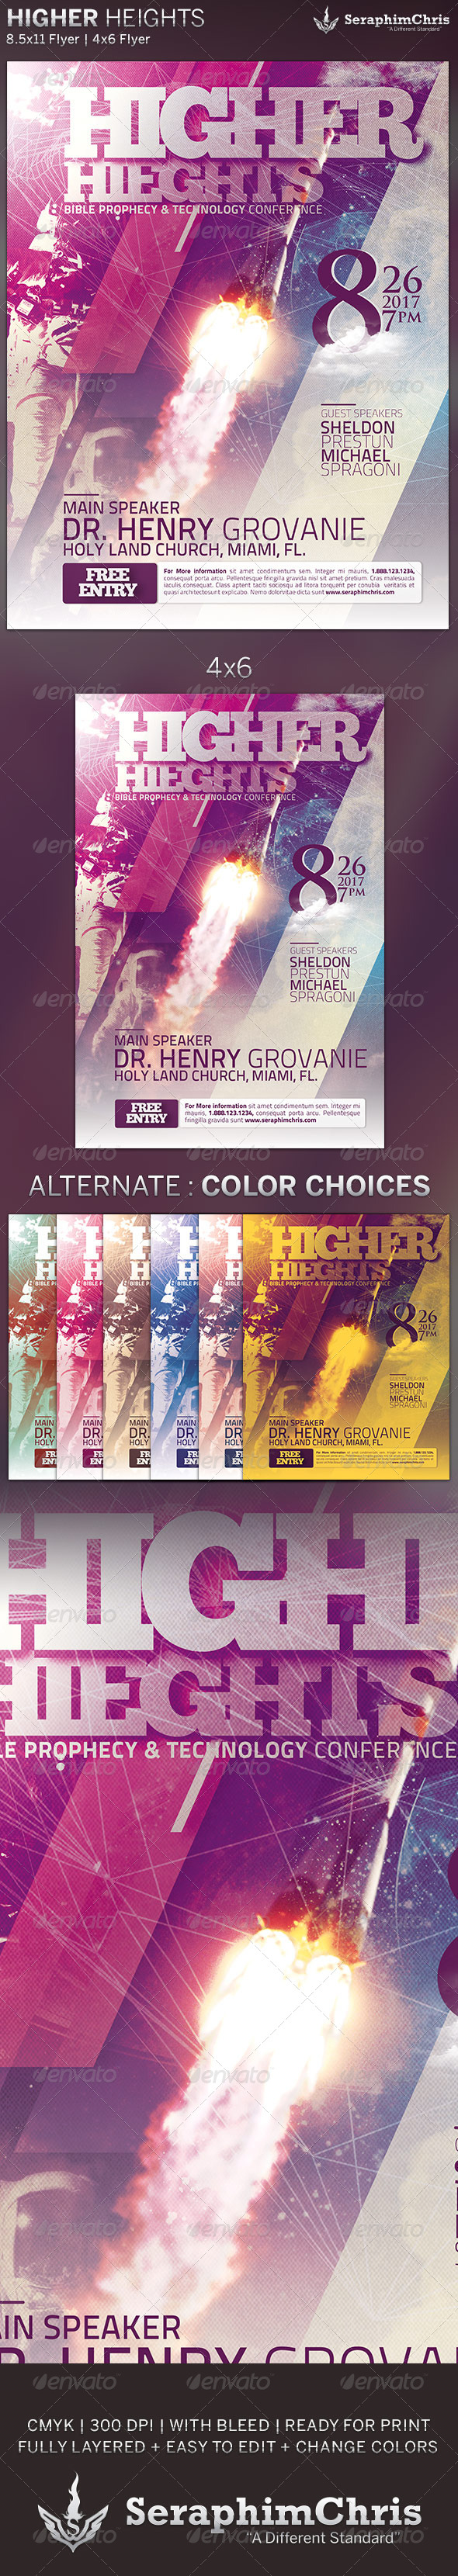 Higher Heights: Church Conference Flyer Template - Church Flyers